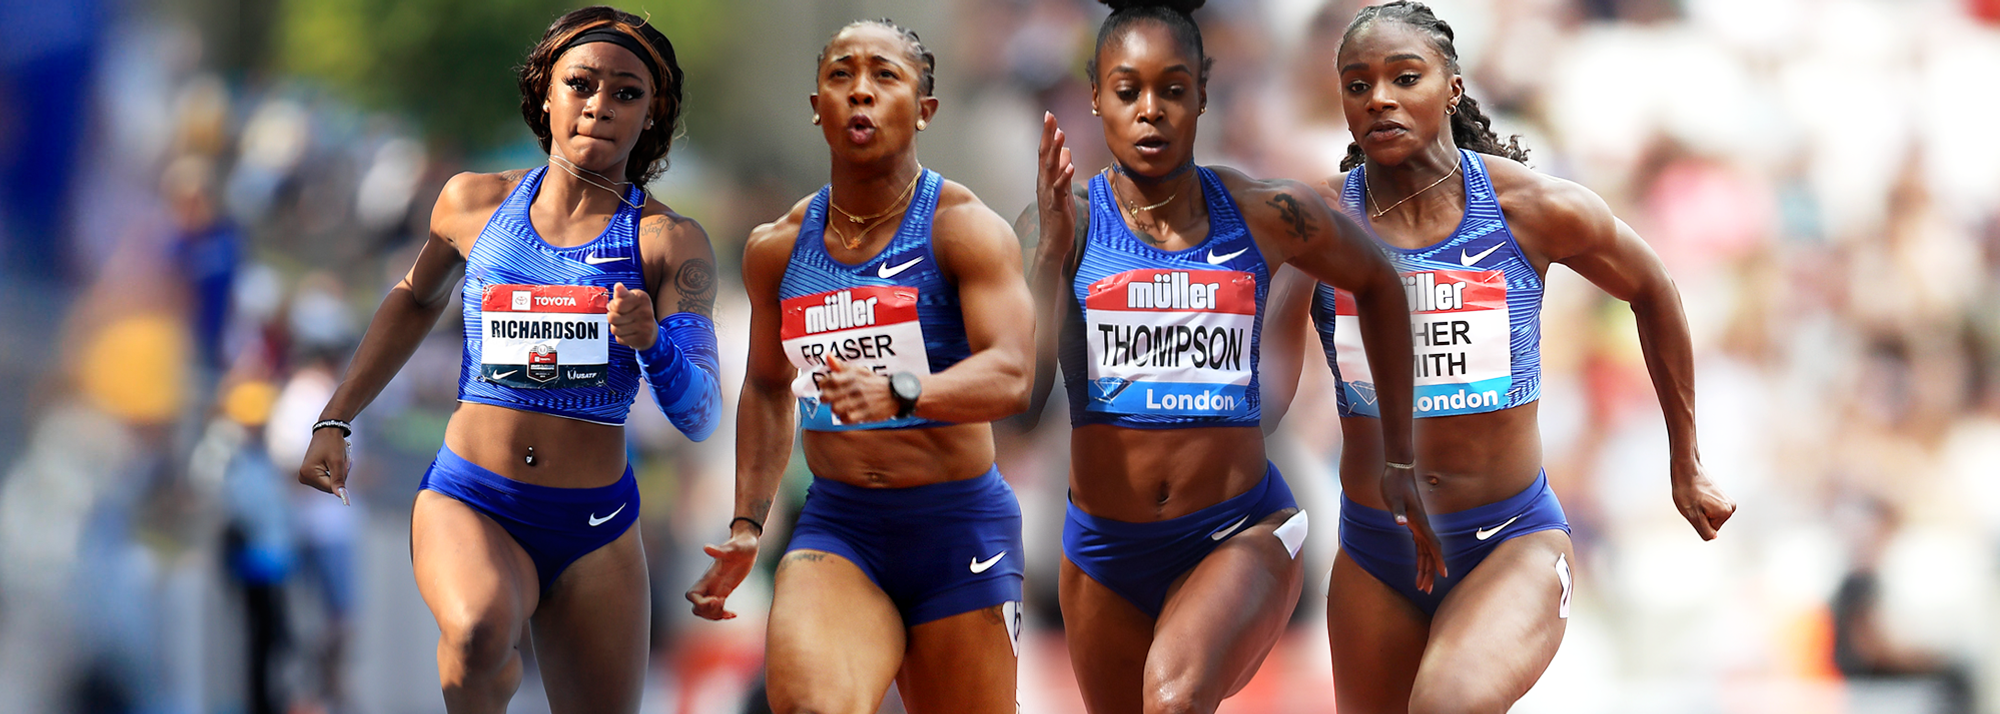 To mark the seven-day countdown to Gateshead, we take a look at seven mouth-watering clashes that have been announced for the first three Diamond League meets of 2021